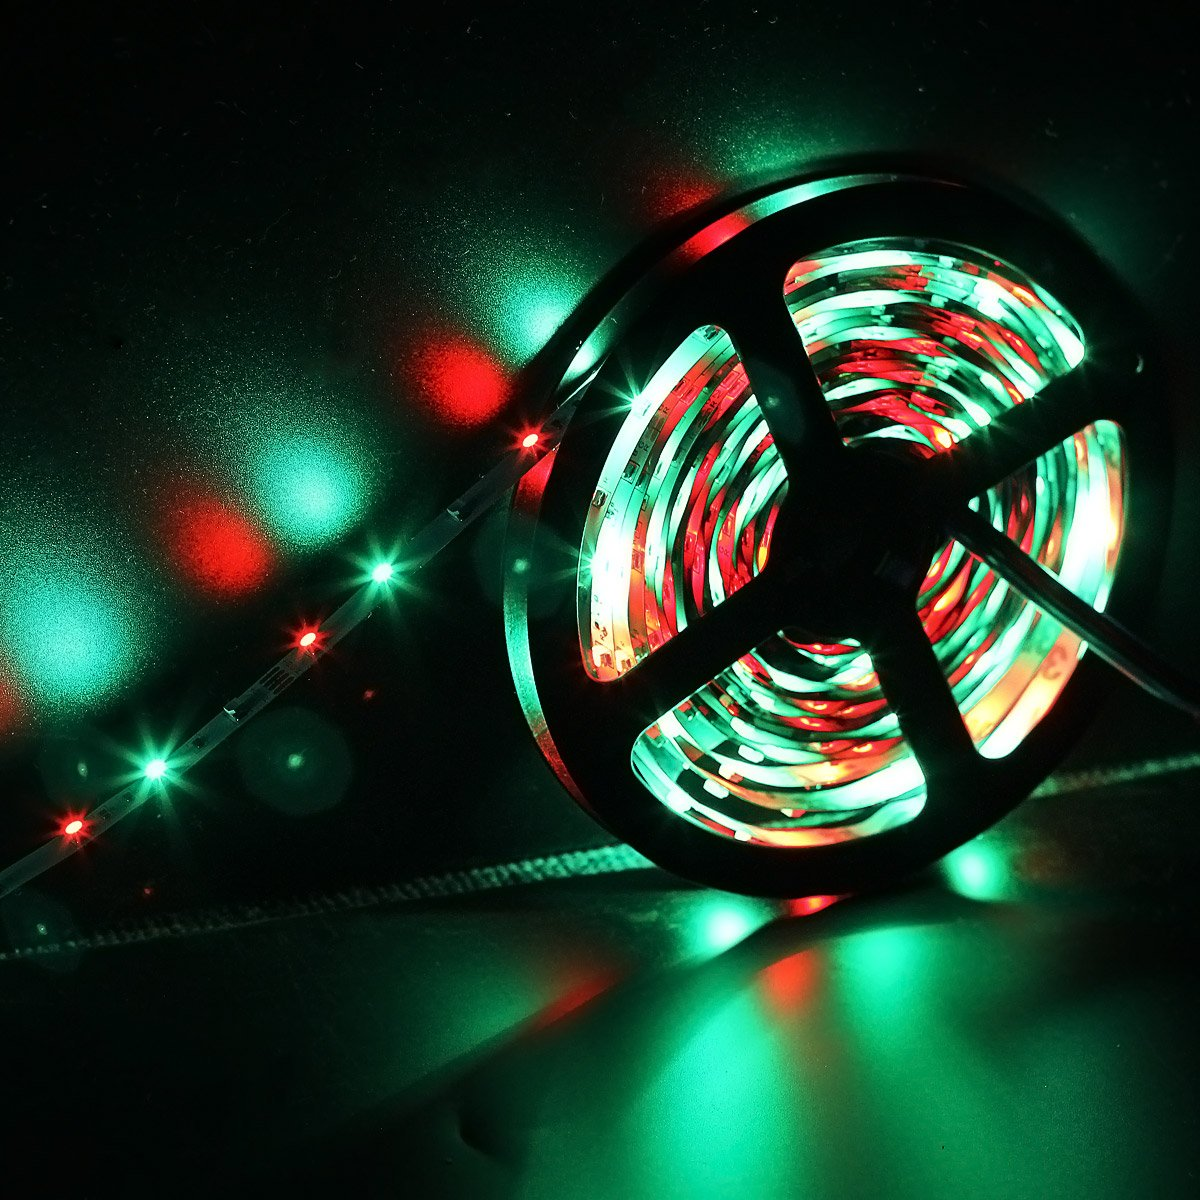 SUPERNIGHT 5M/16.4 Ft SMD 3528 RGB 300 LED Color Changing Kit with Flexible Strip Light+44 Key IR Remote Control+ Power Supply by SUPERNIGHT (Image #3)